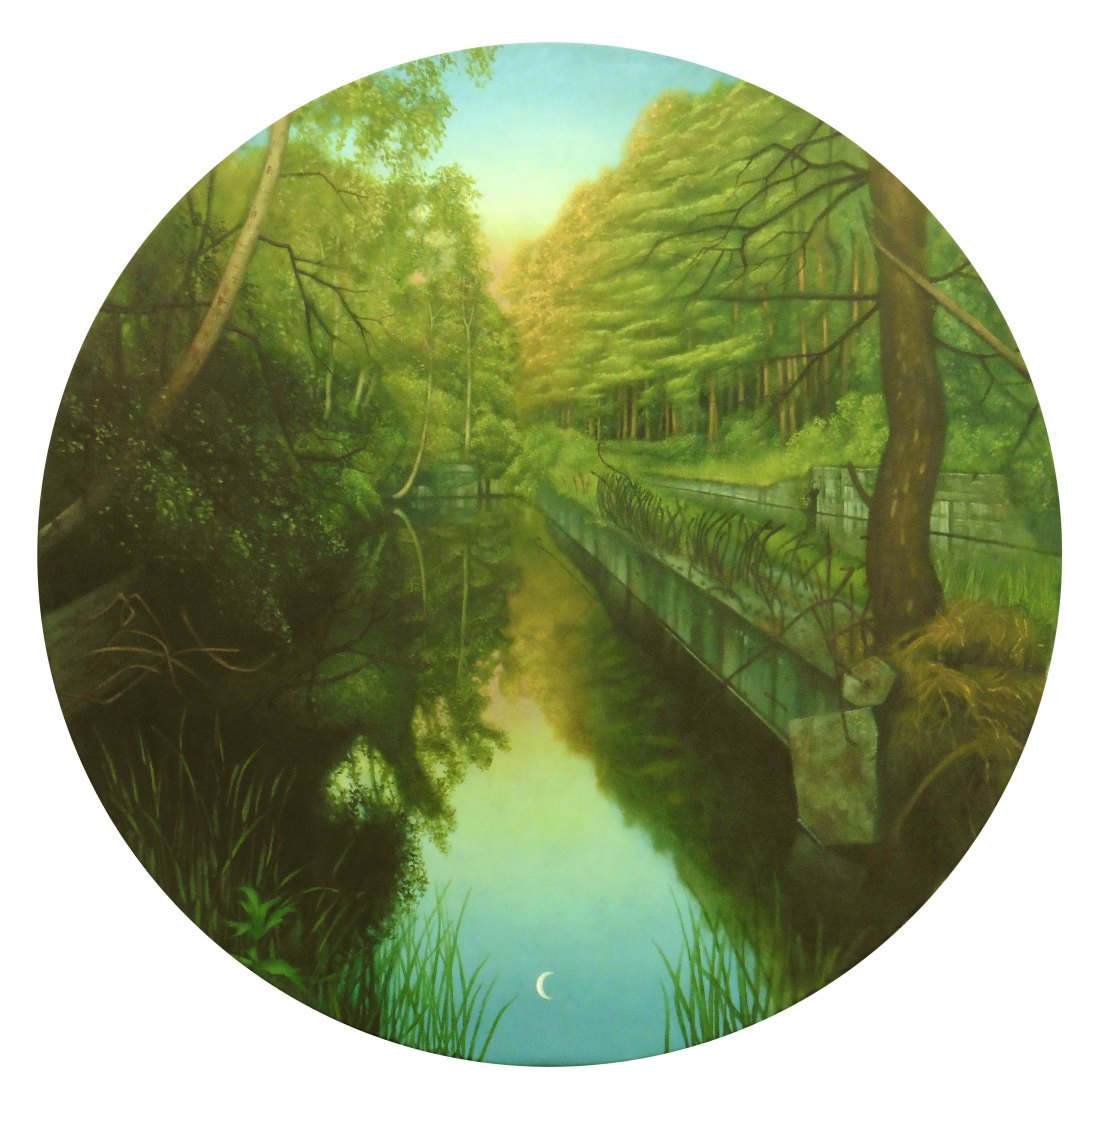 POST PRUFSTAND VII PEENEMUNDE Oil on Canvas 43 Inches Diameter James McDonald 2017